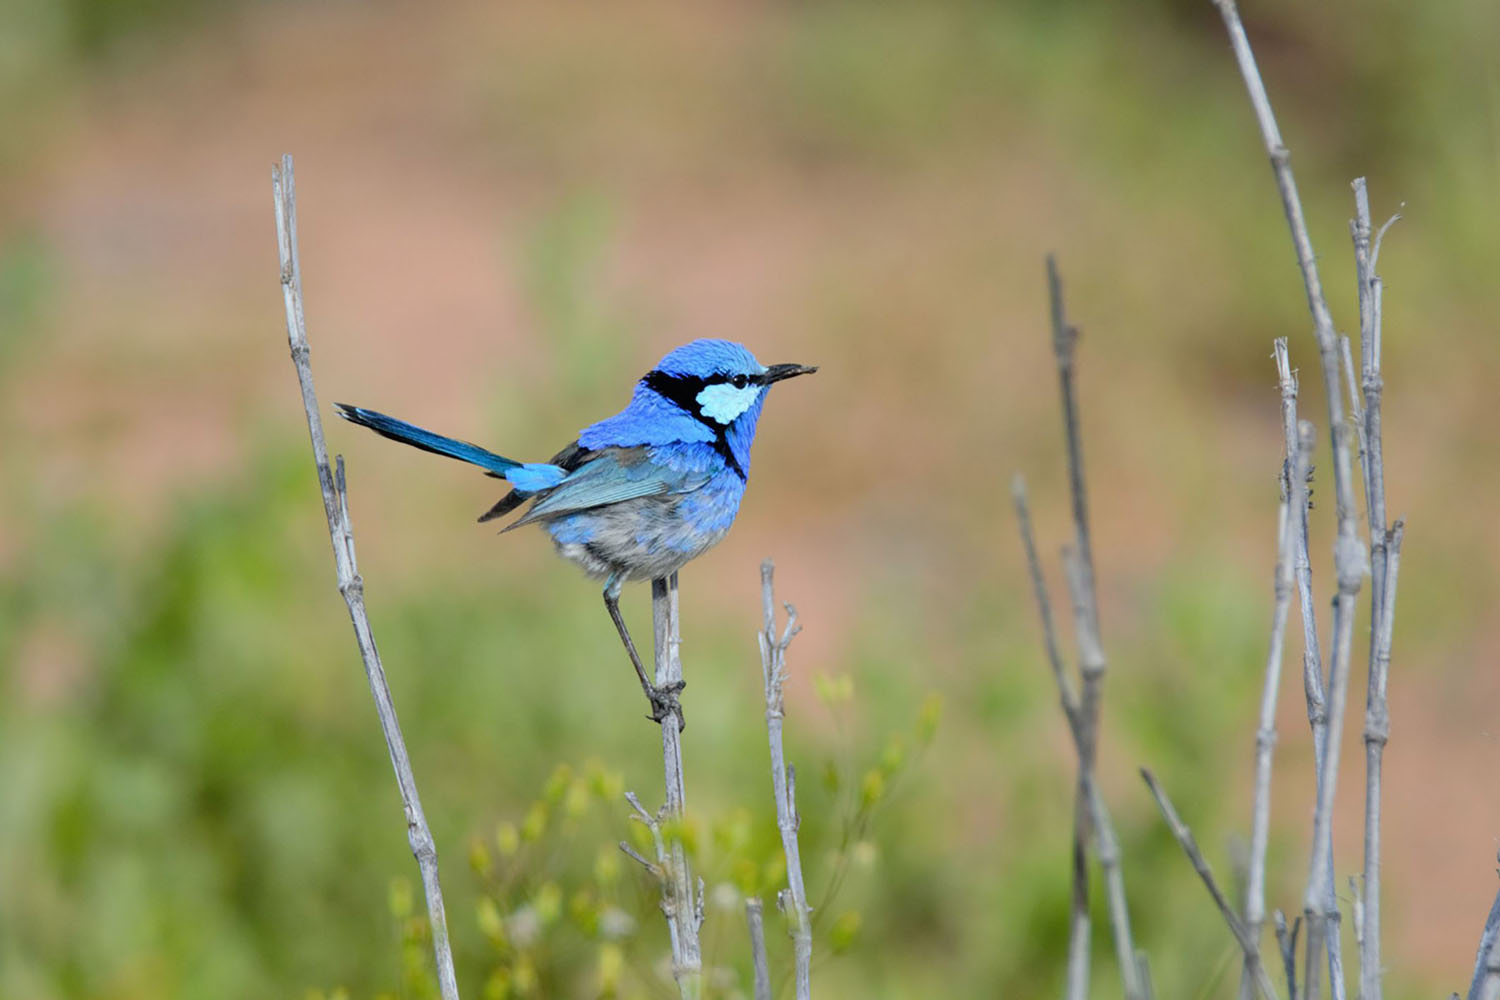 Splendid fairy-wren swooping in to feed on insects